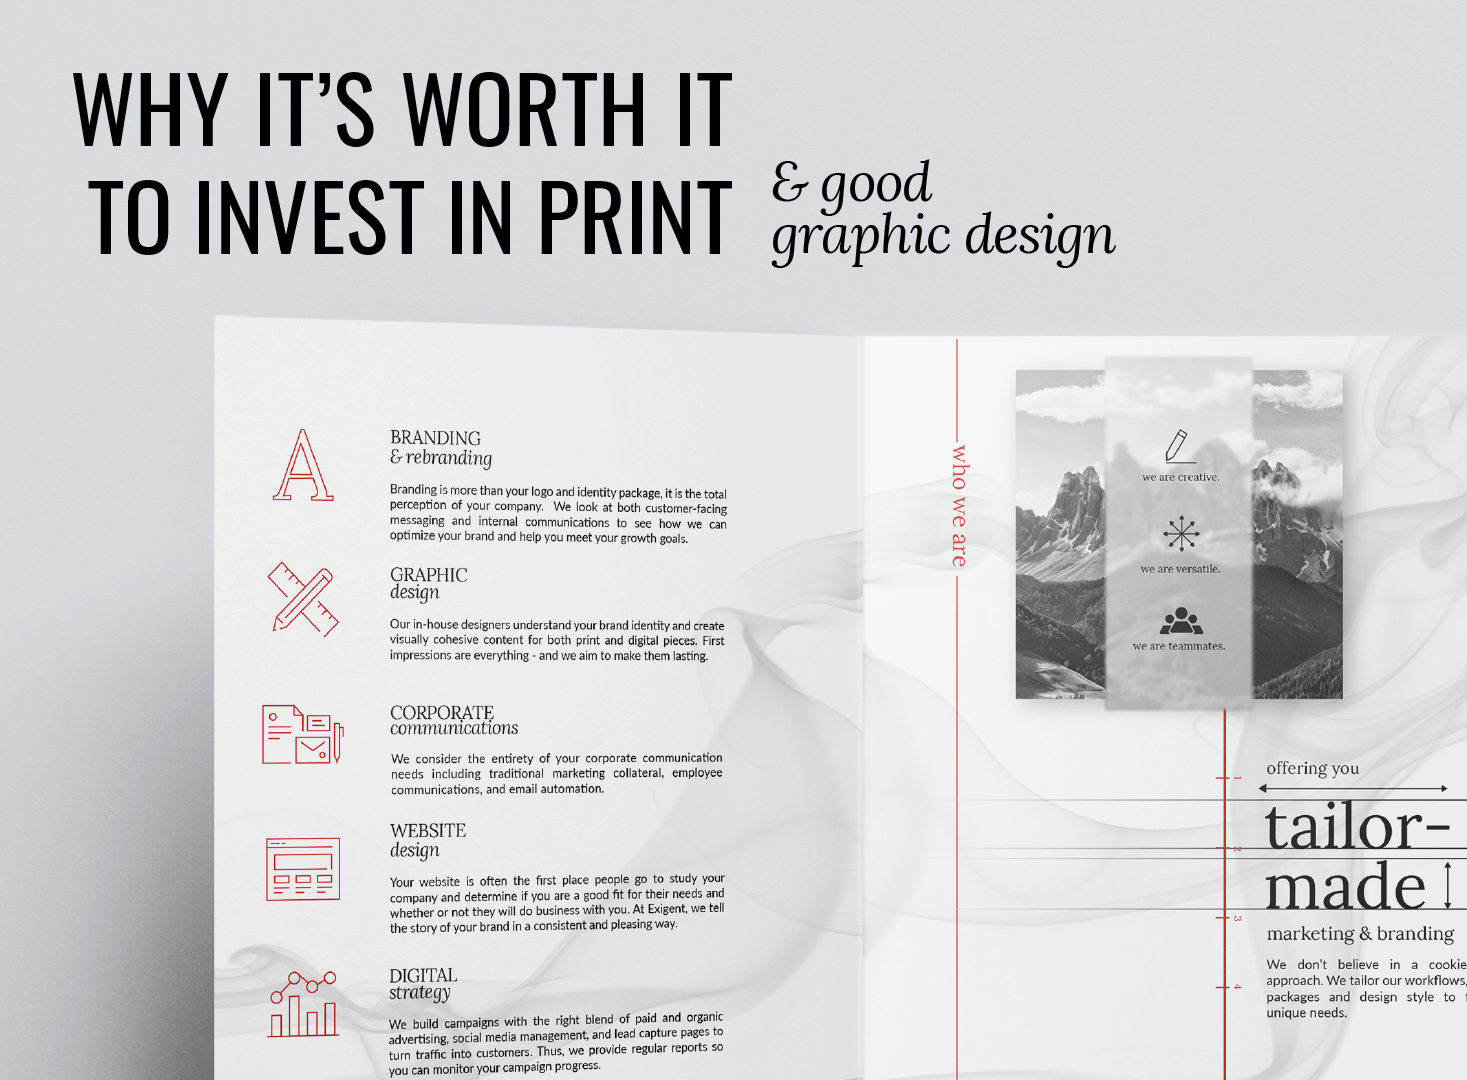 invest in print and good graphic design